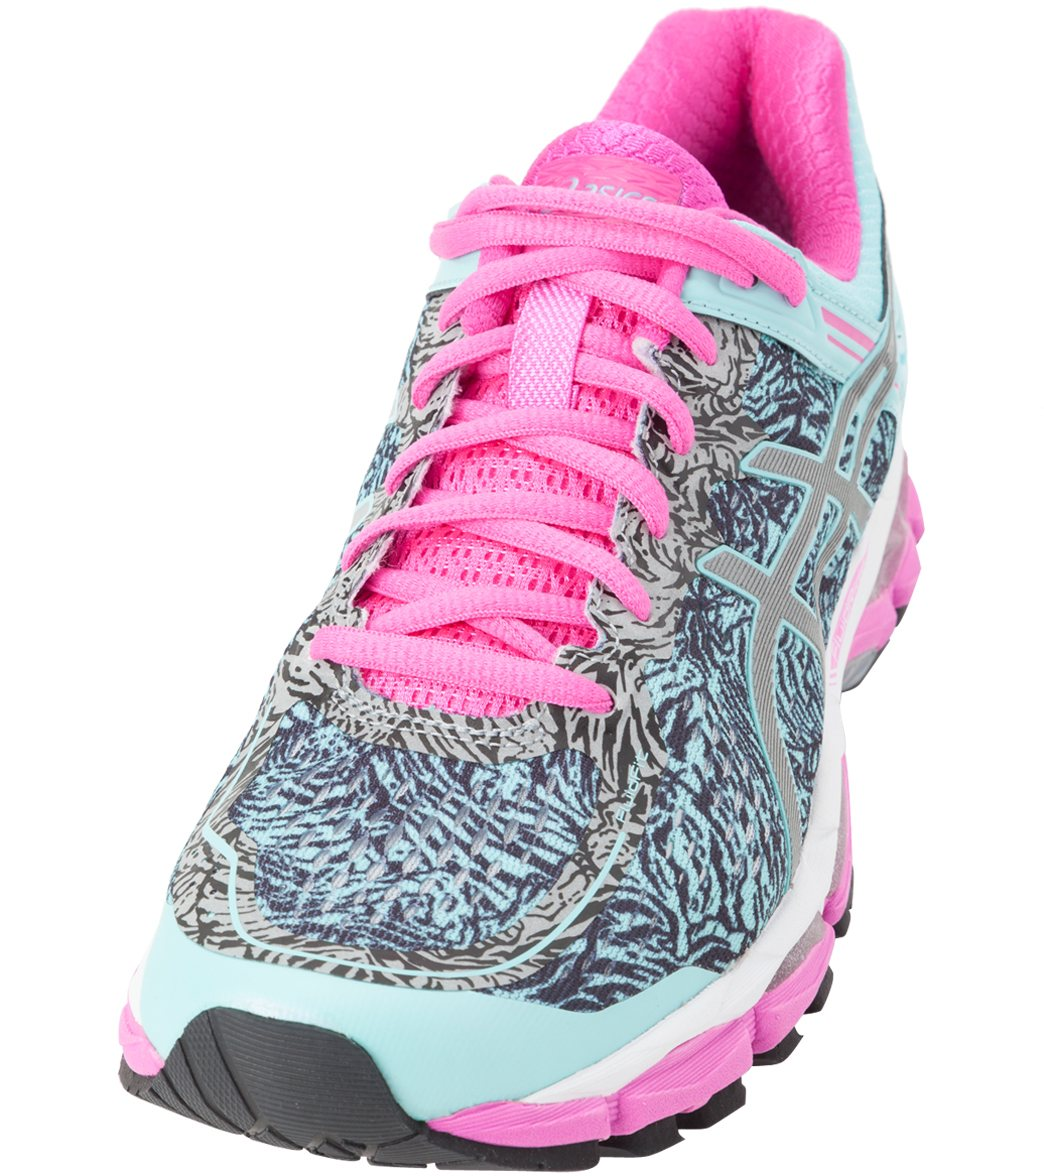 afe76c9c48fd Asics Women s Gel-Kayano 22 Lite-Show Running Shoes at SwimOutlet.com -  Free Shipping